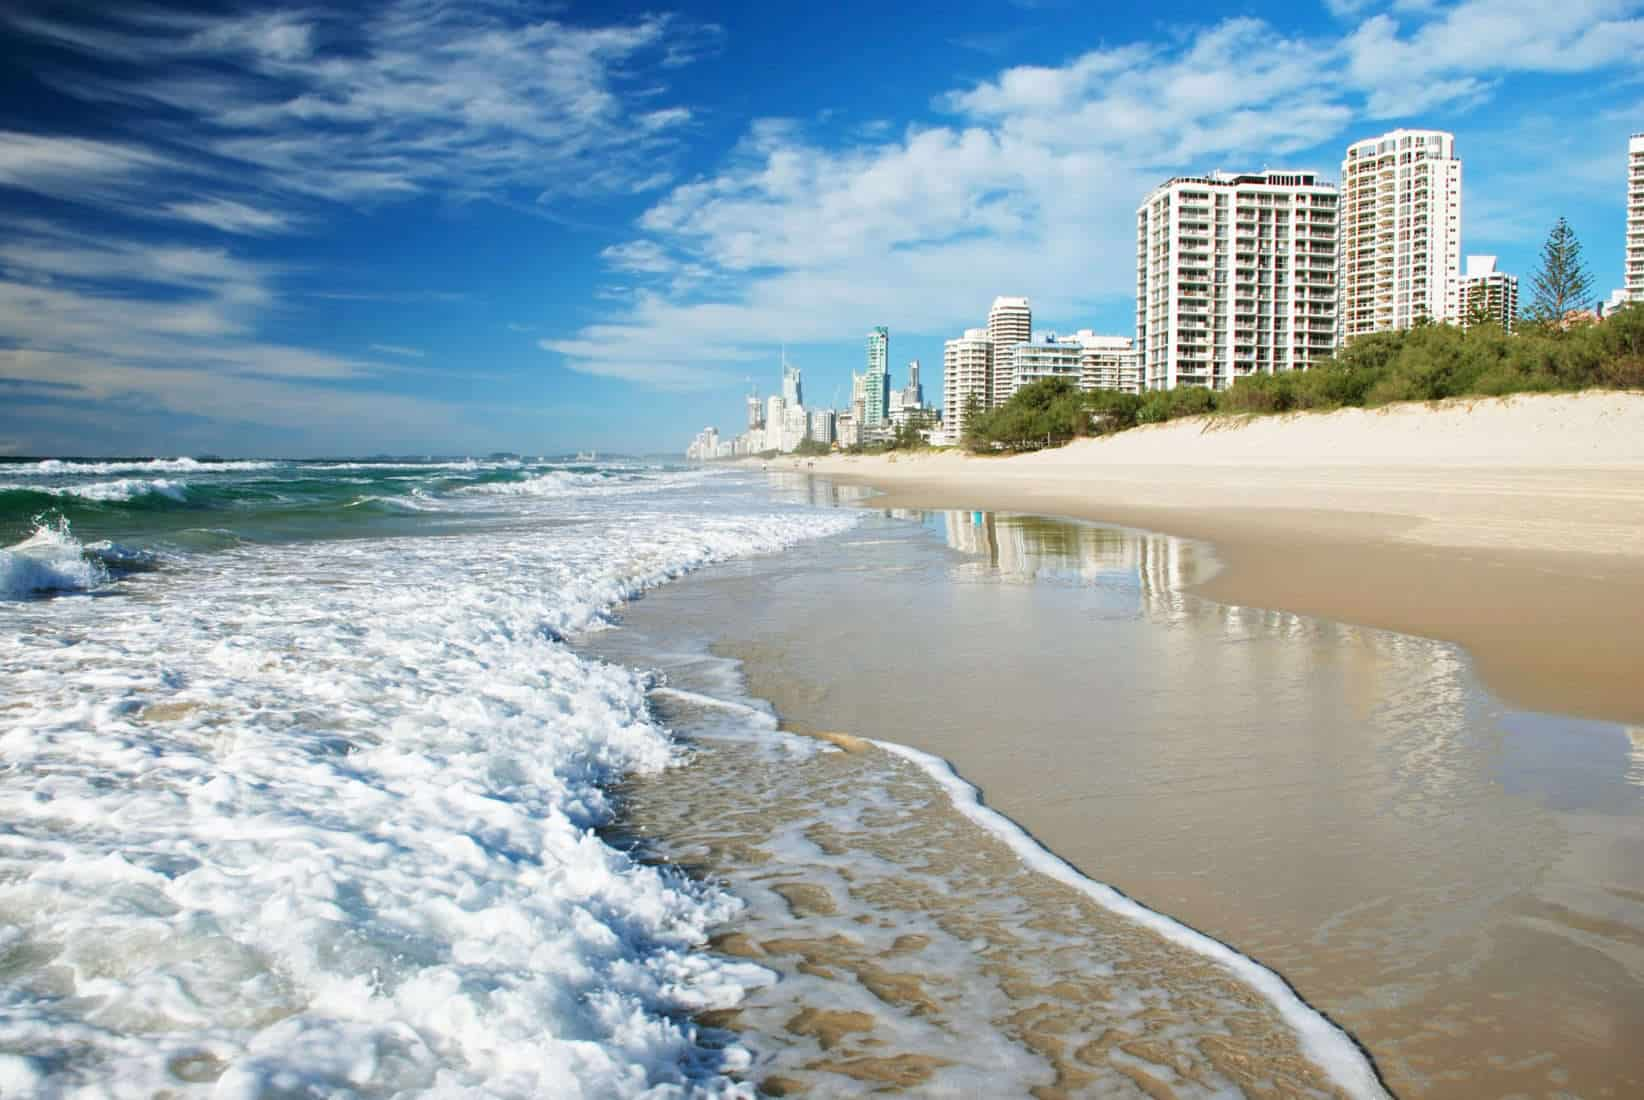 Surfers paradise beach, Goldcoast, Australia